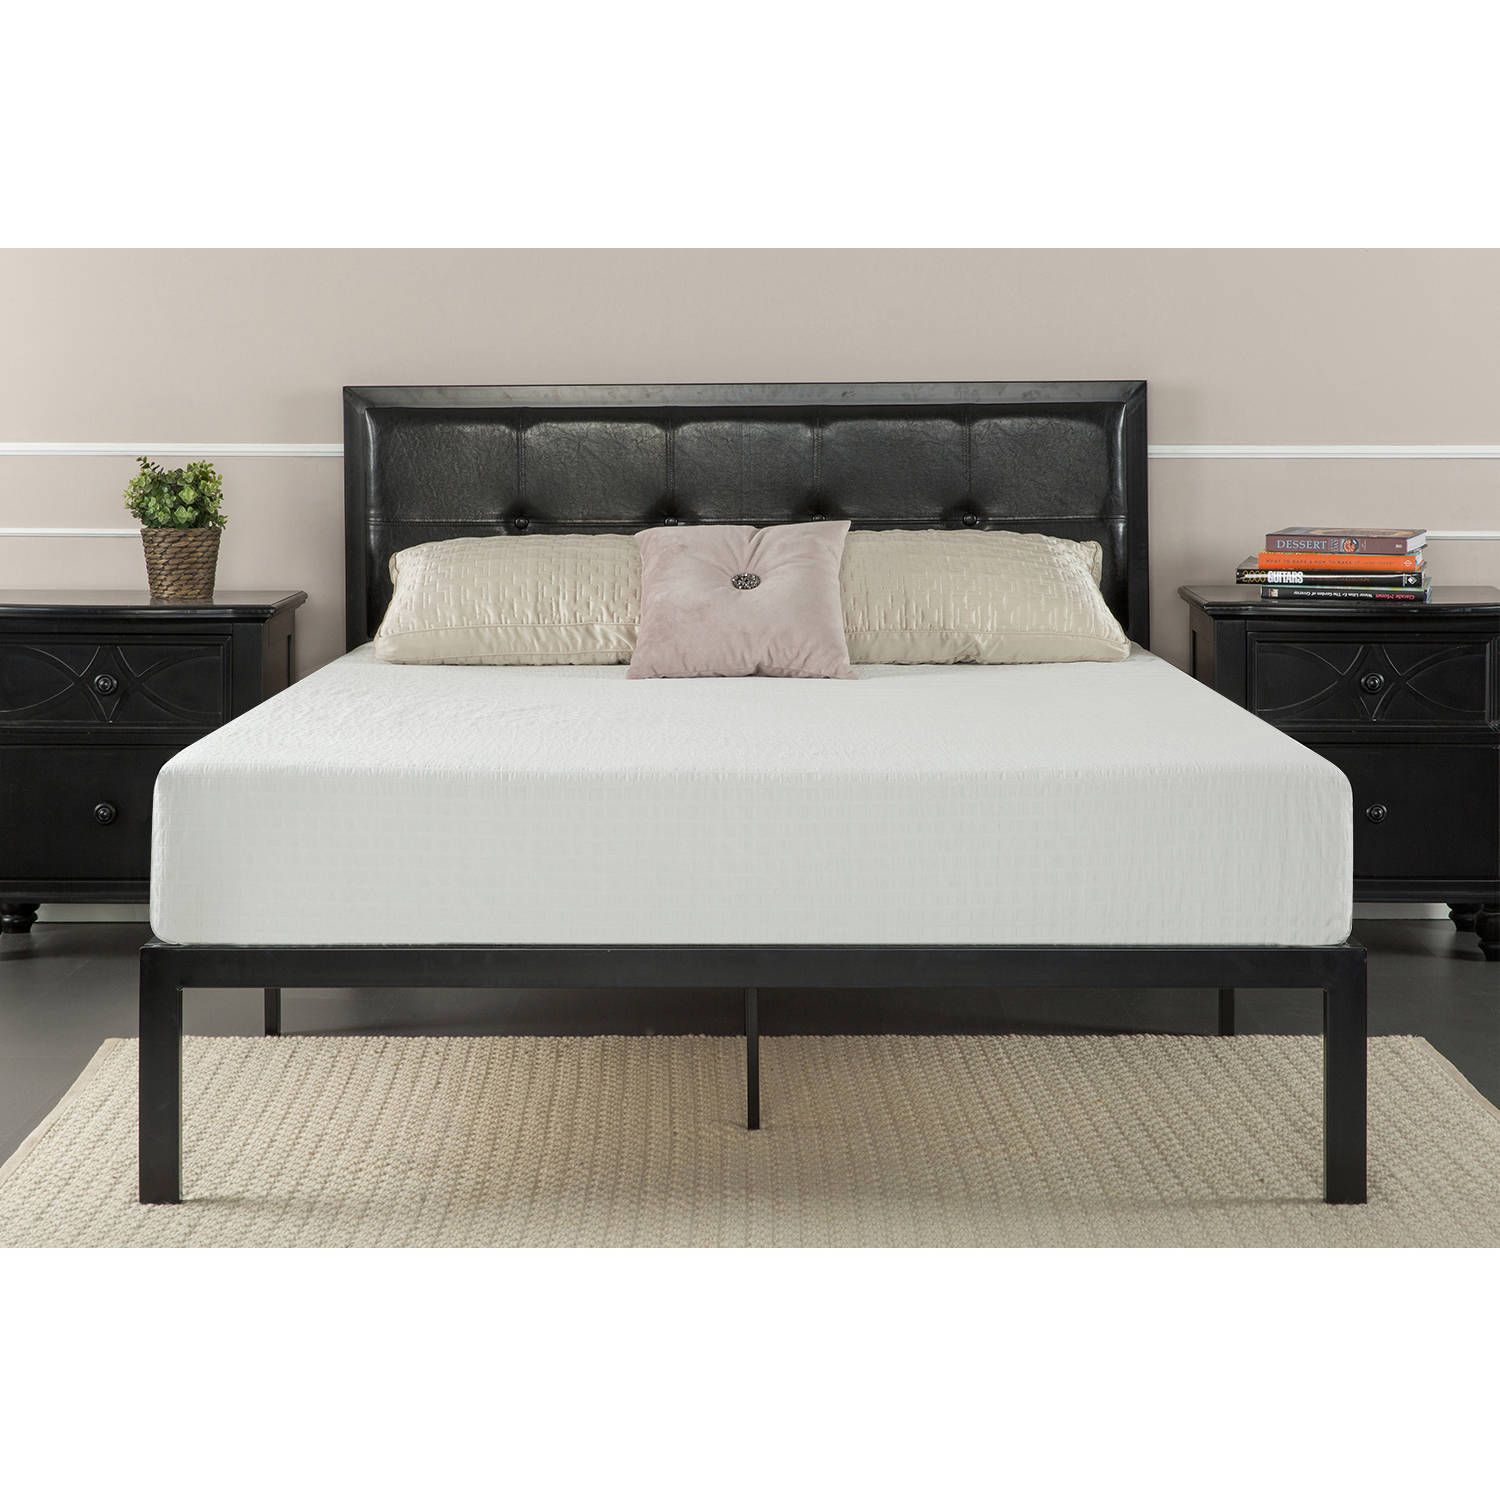 Zinus Faux Leather Classic Platform Bed with Steel Support Slats by ZINUS